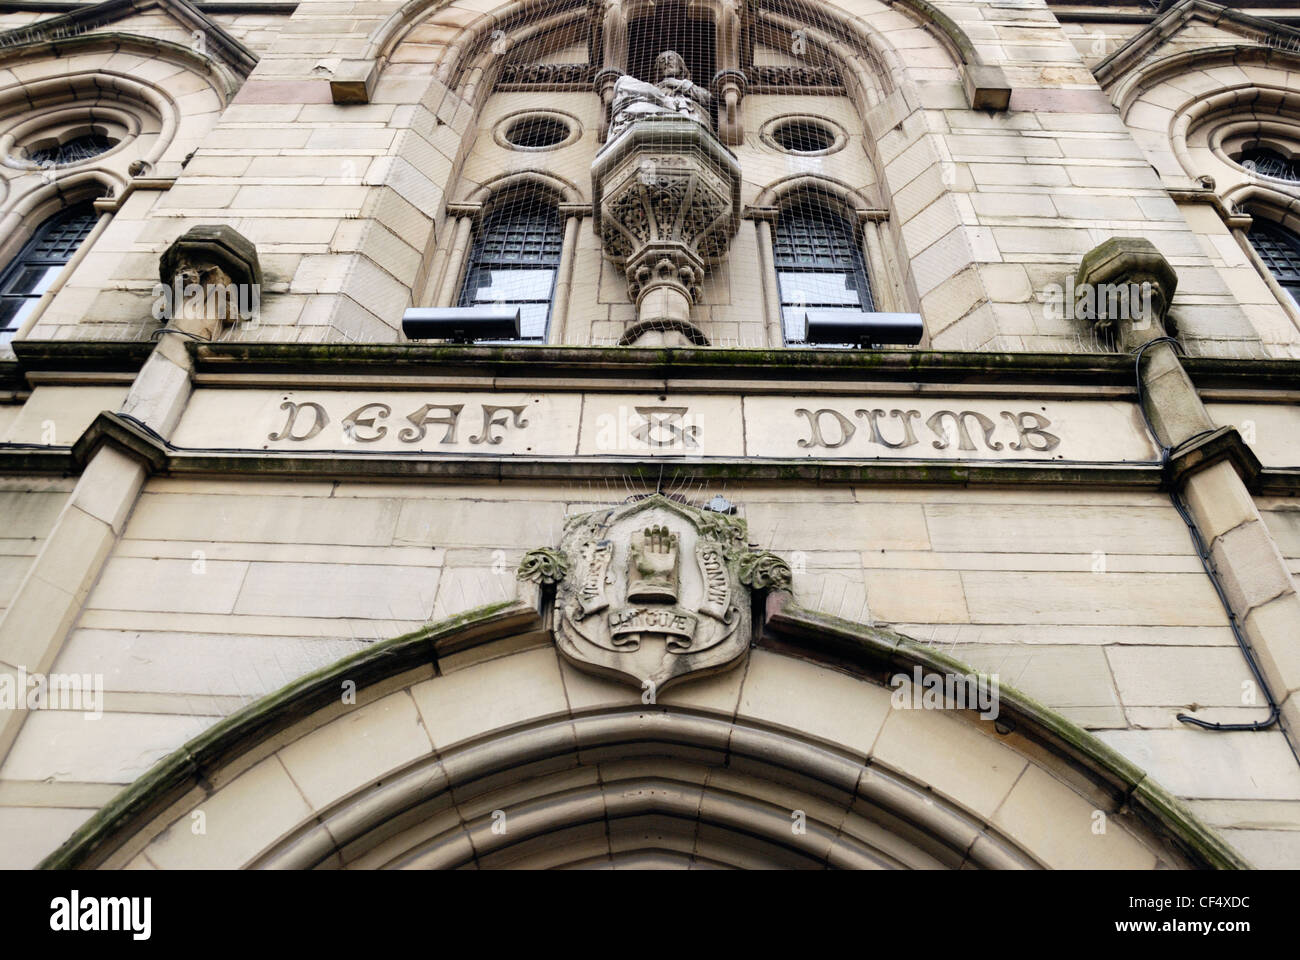 The Deaf and Dumb Institute building in Grovesnor Street, Manchester, now known as The Deaf Institute and home to - Stock Image